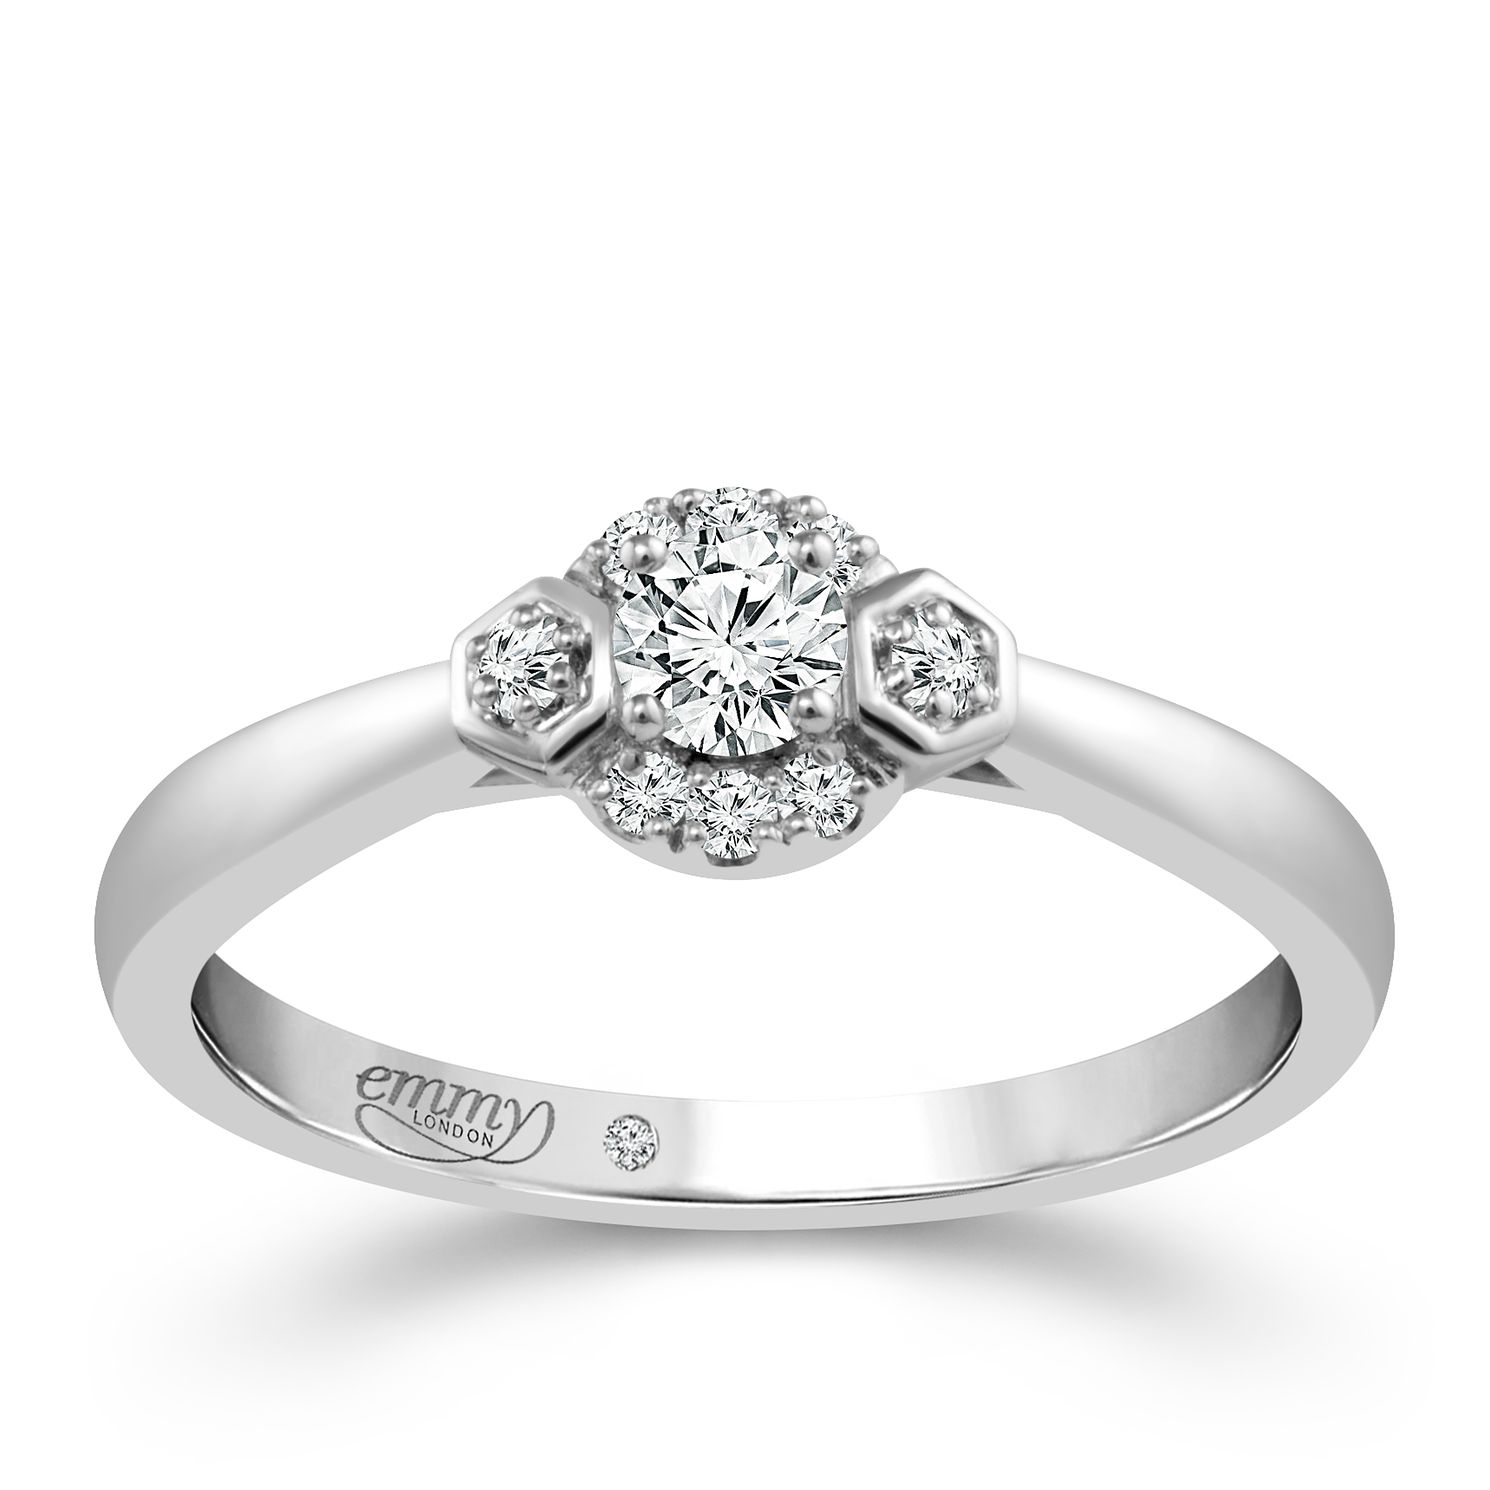 Emmy London 18ct White Gold 1/5 Carat Diamond Solitaire Ring - Product number 4713869